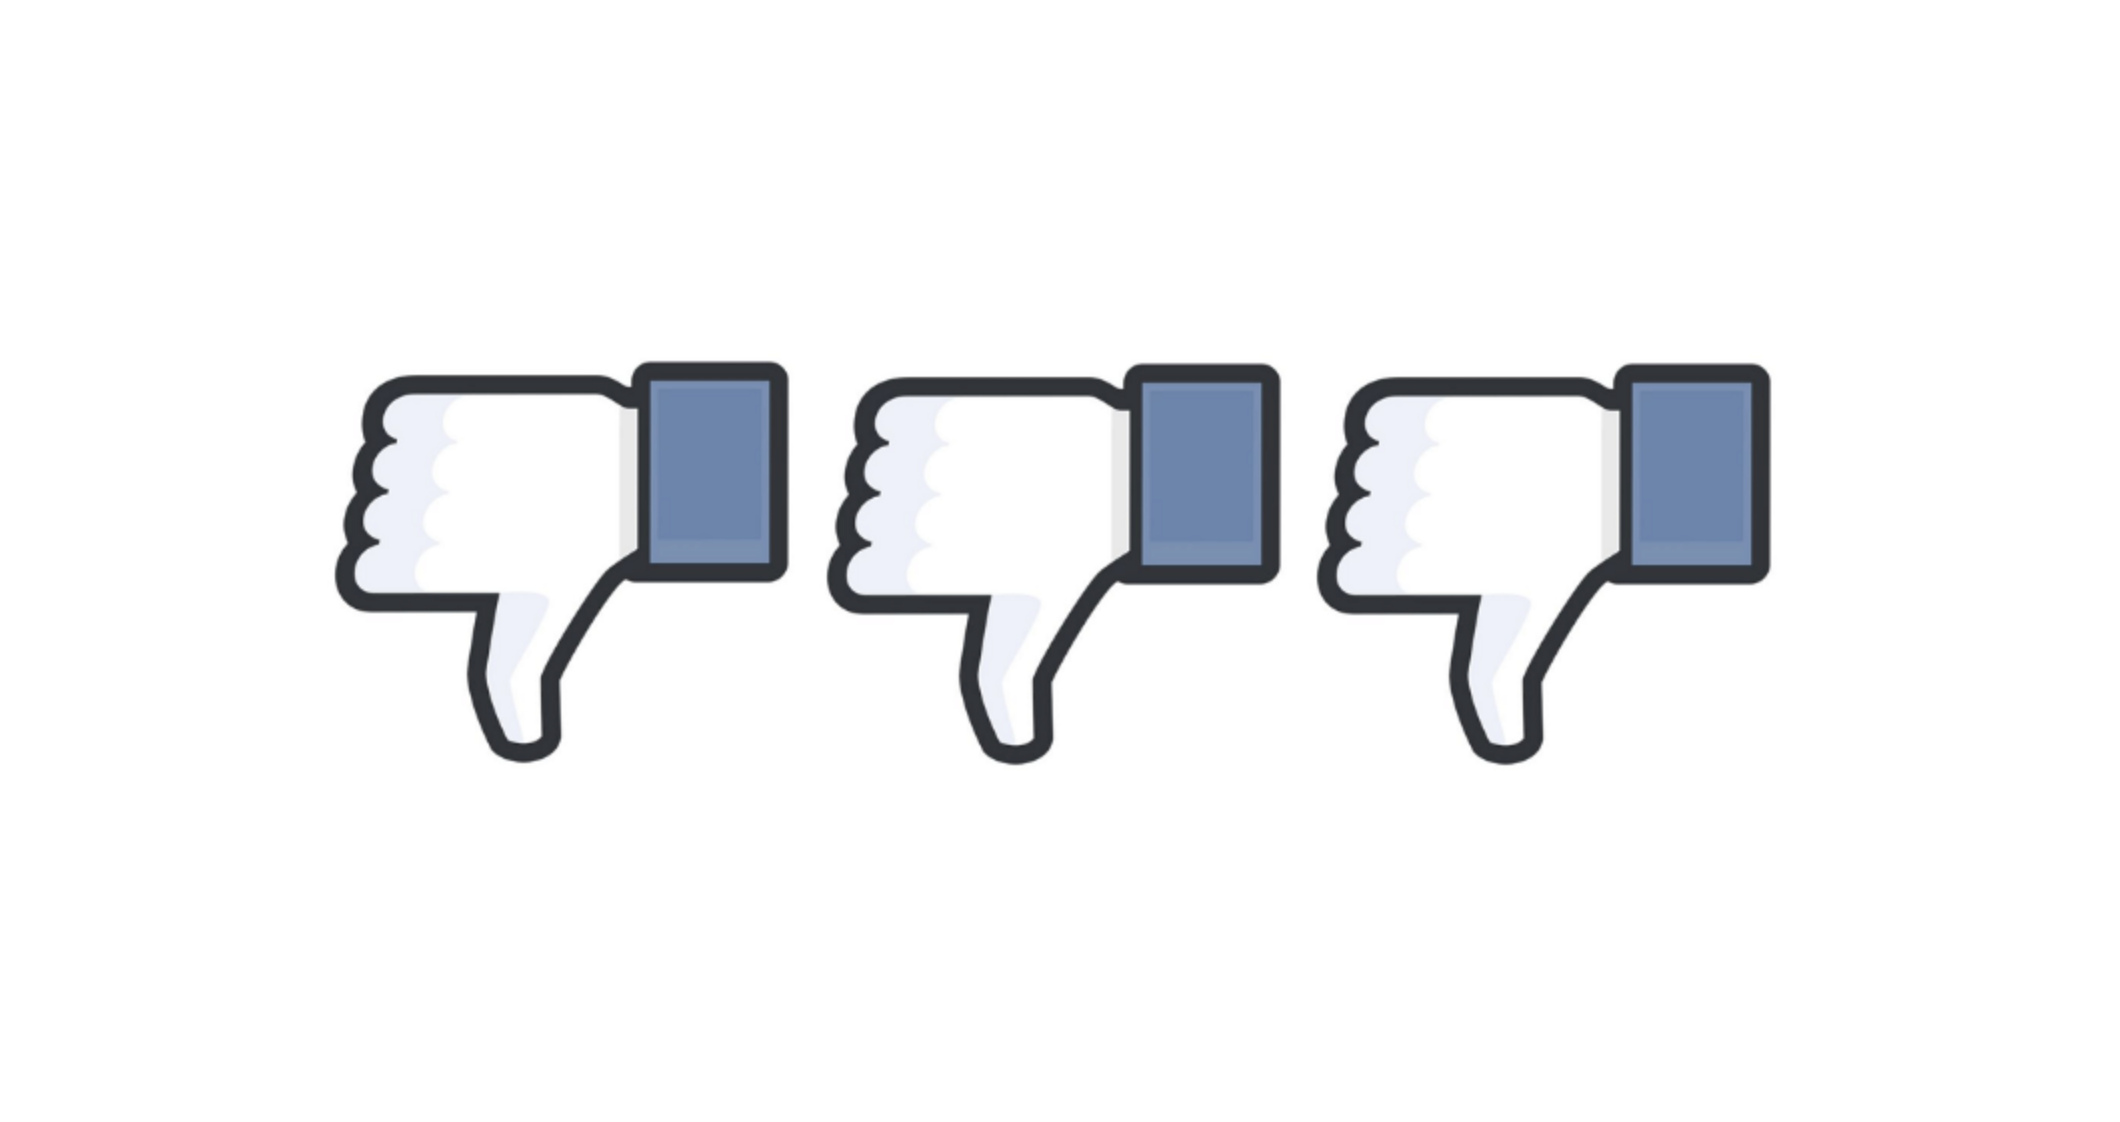 OP-ED: The Facebook algorithm doesn't kill good content – so suck it up